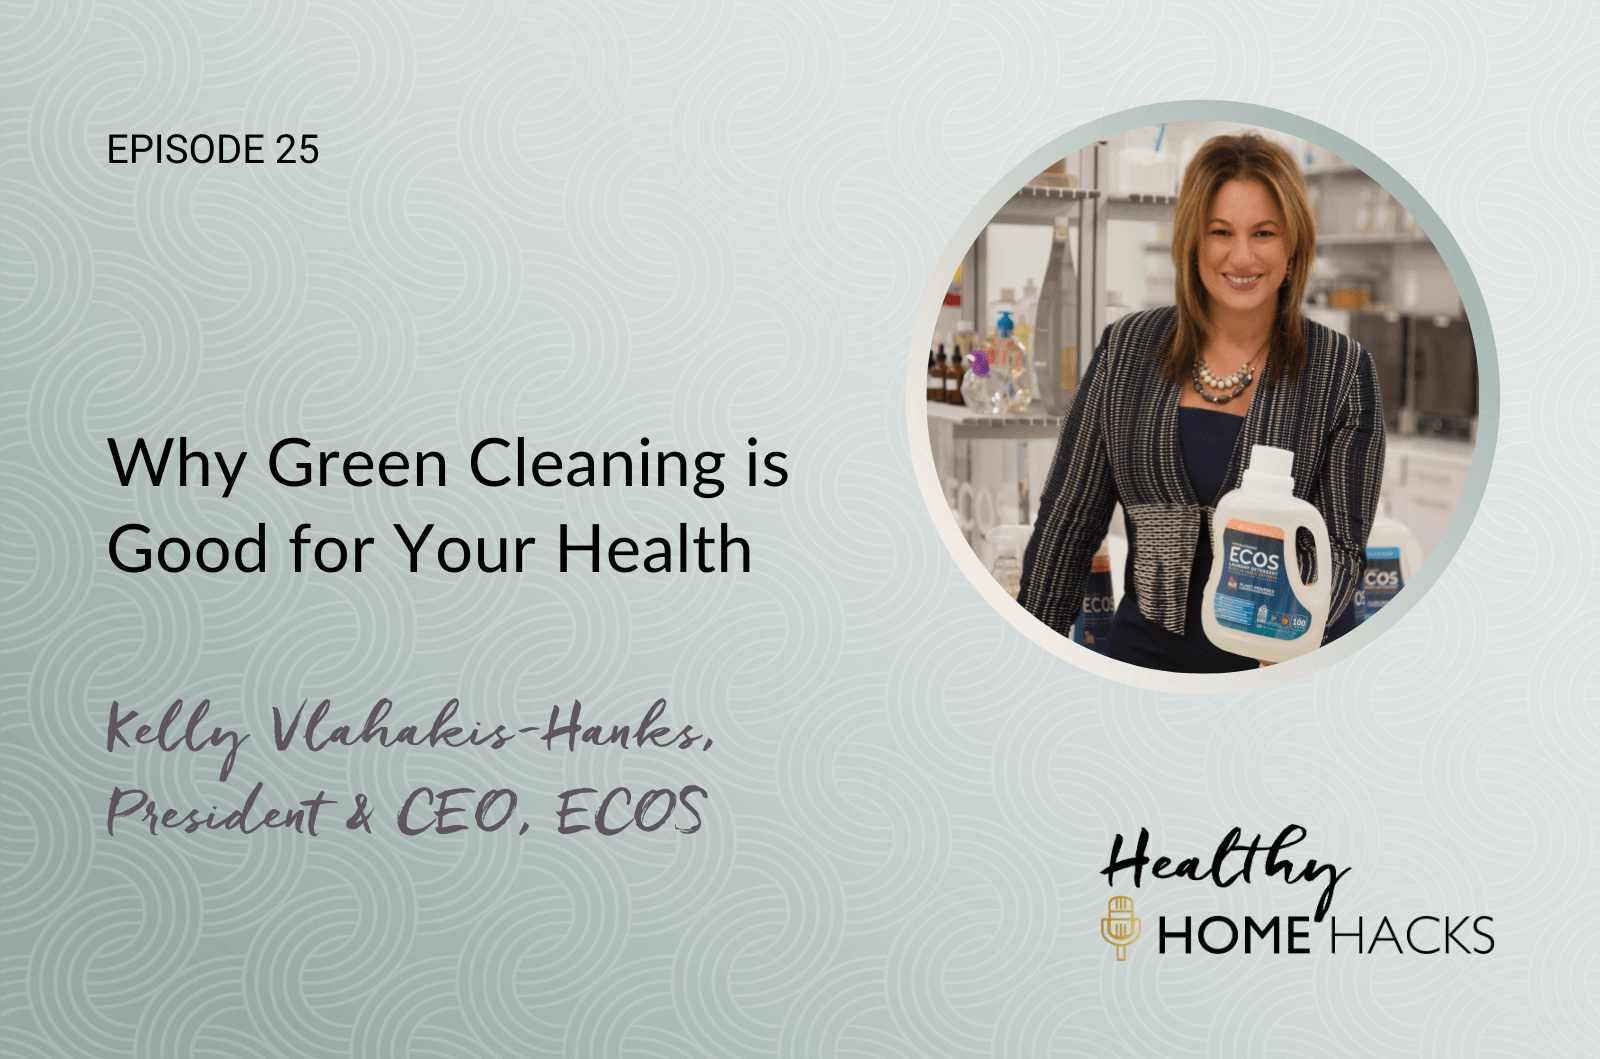 Why Green Cleaning is Good for Your Health